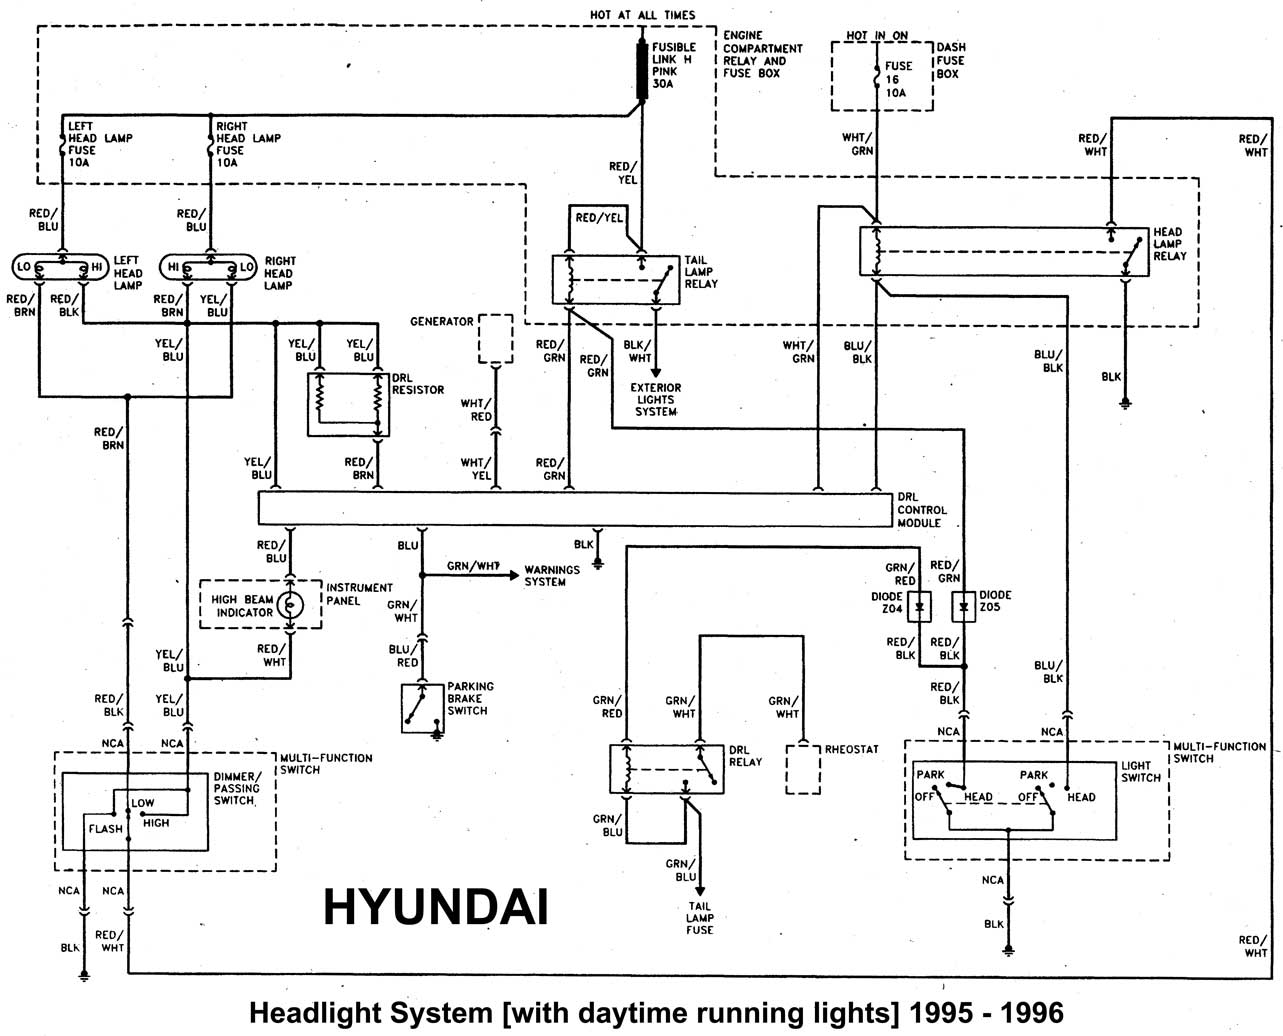 H0507h82b Alternator And Electrical Components Diagram And Parts